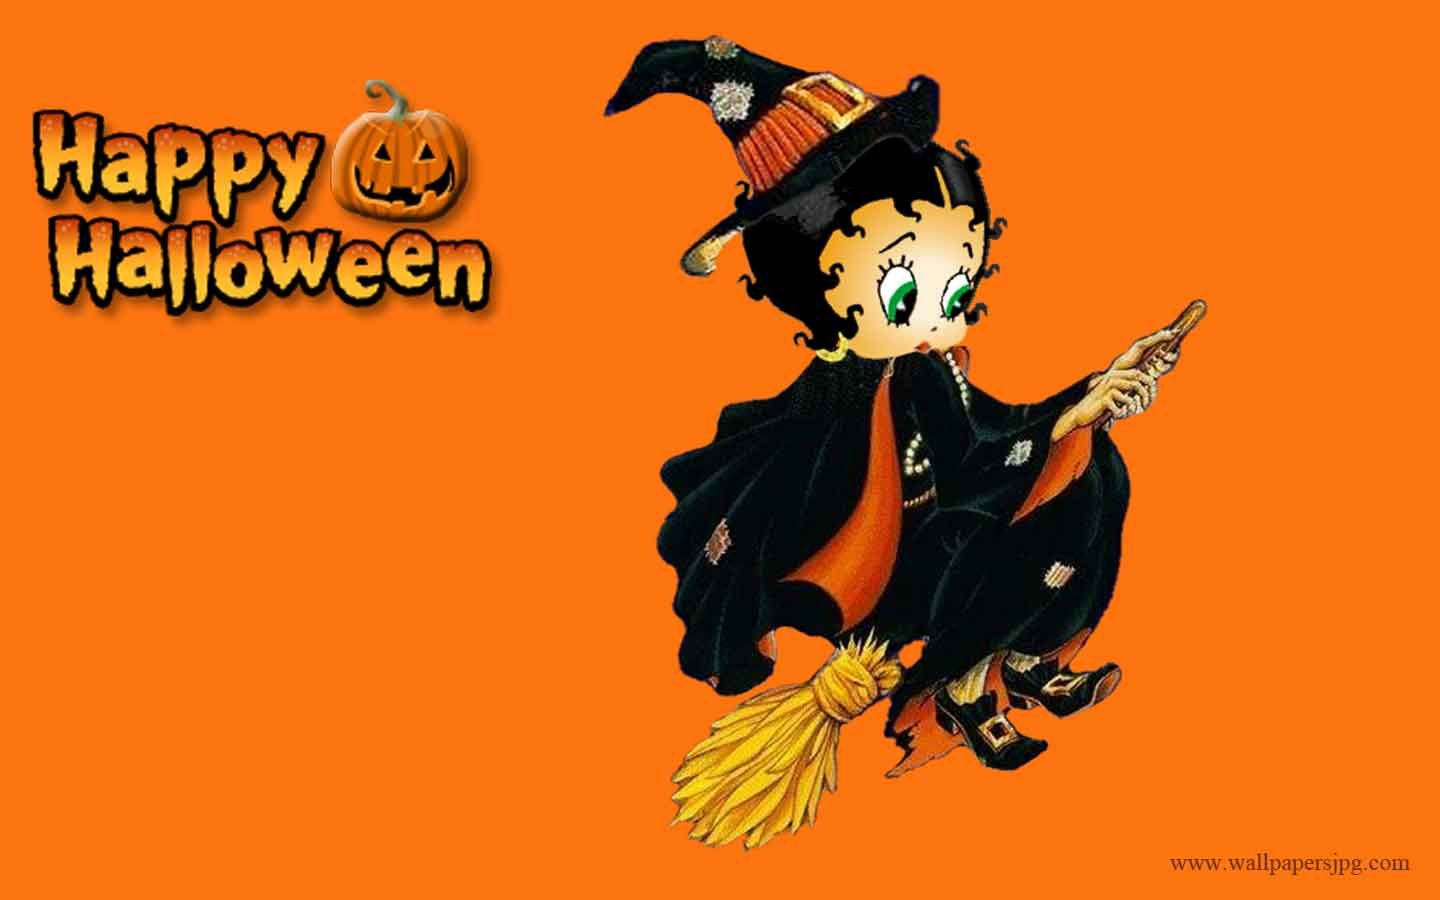 halloween images free | free happy halloween betty boop witch hd